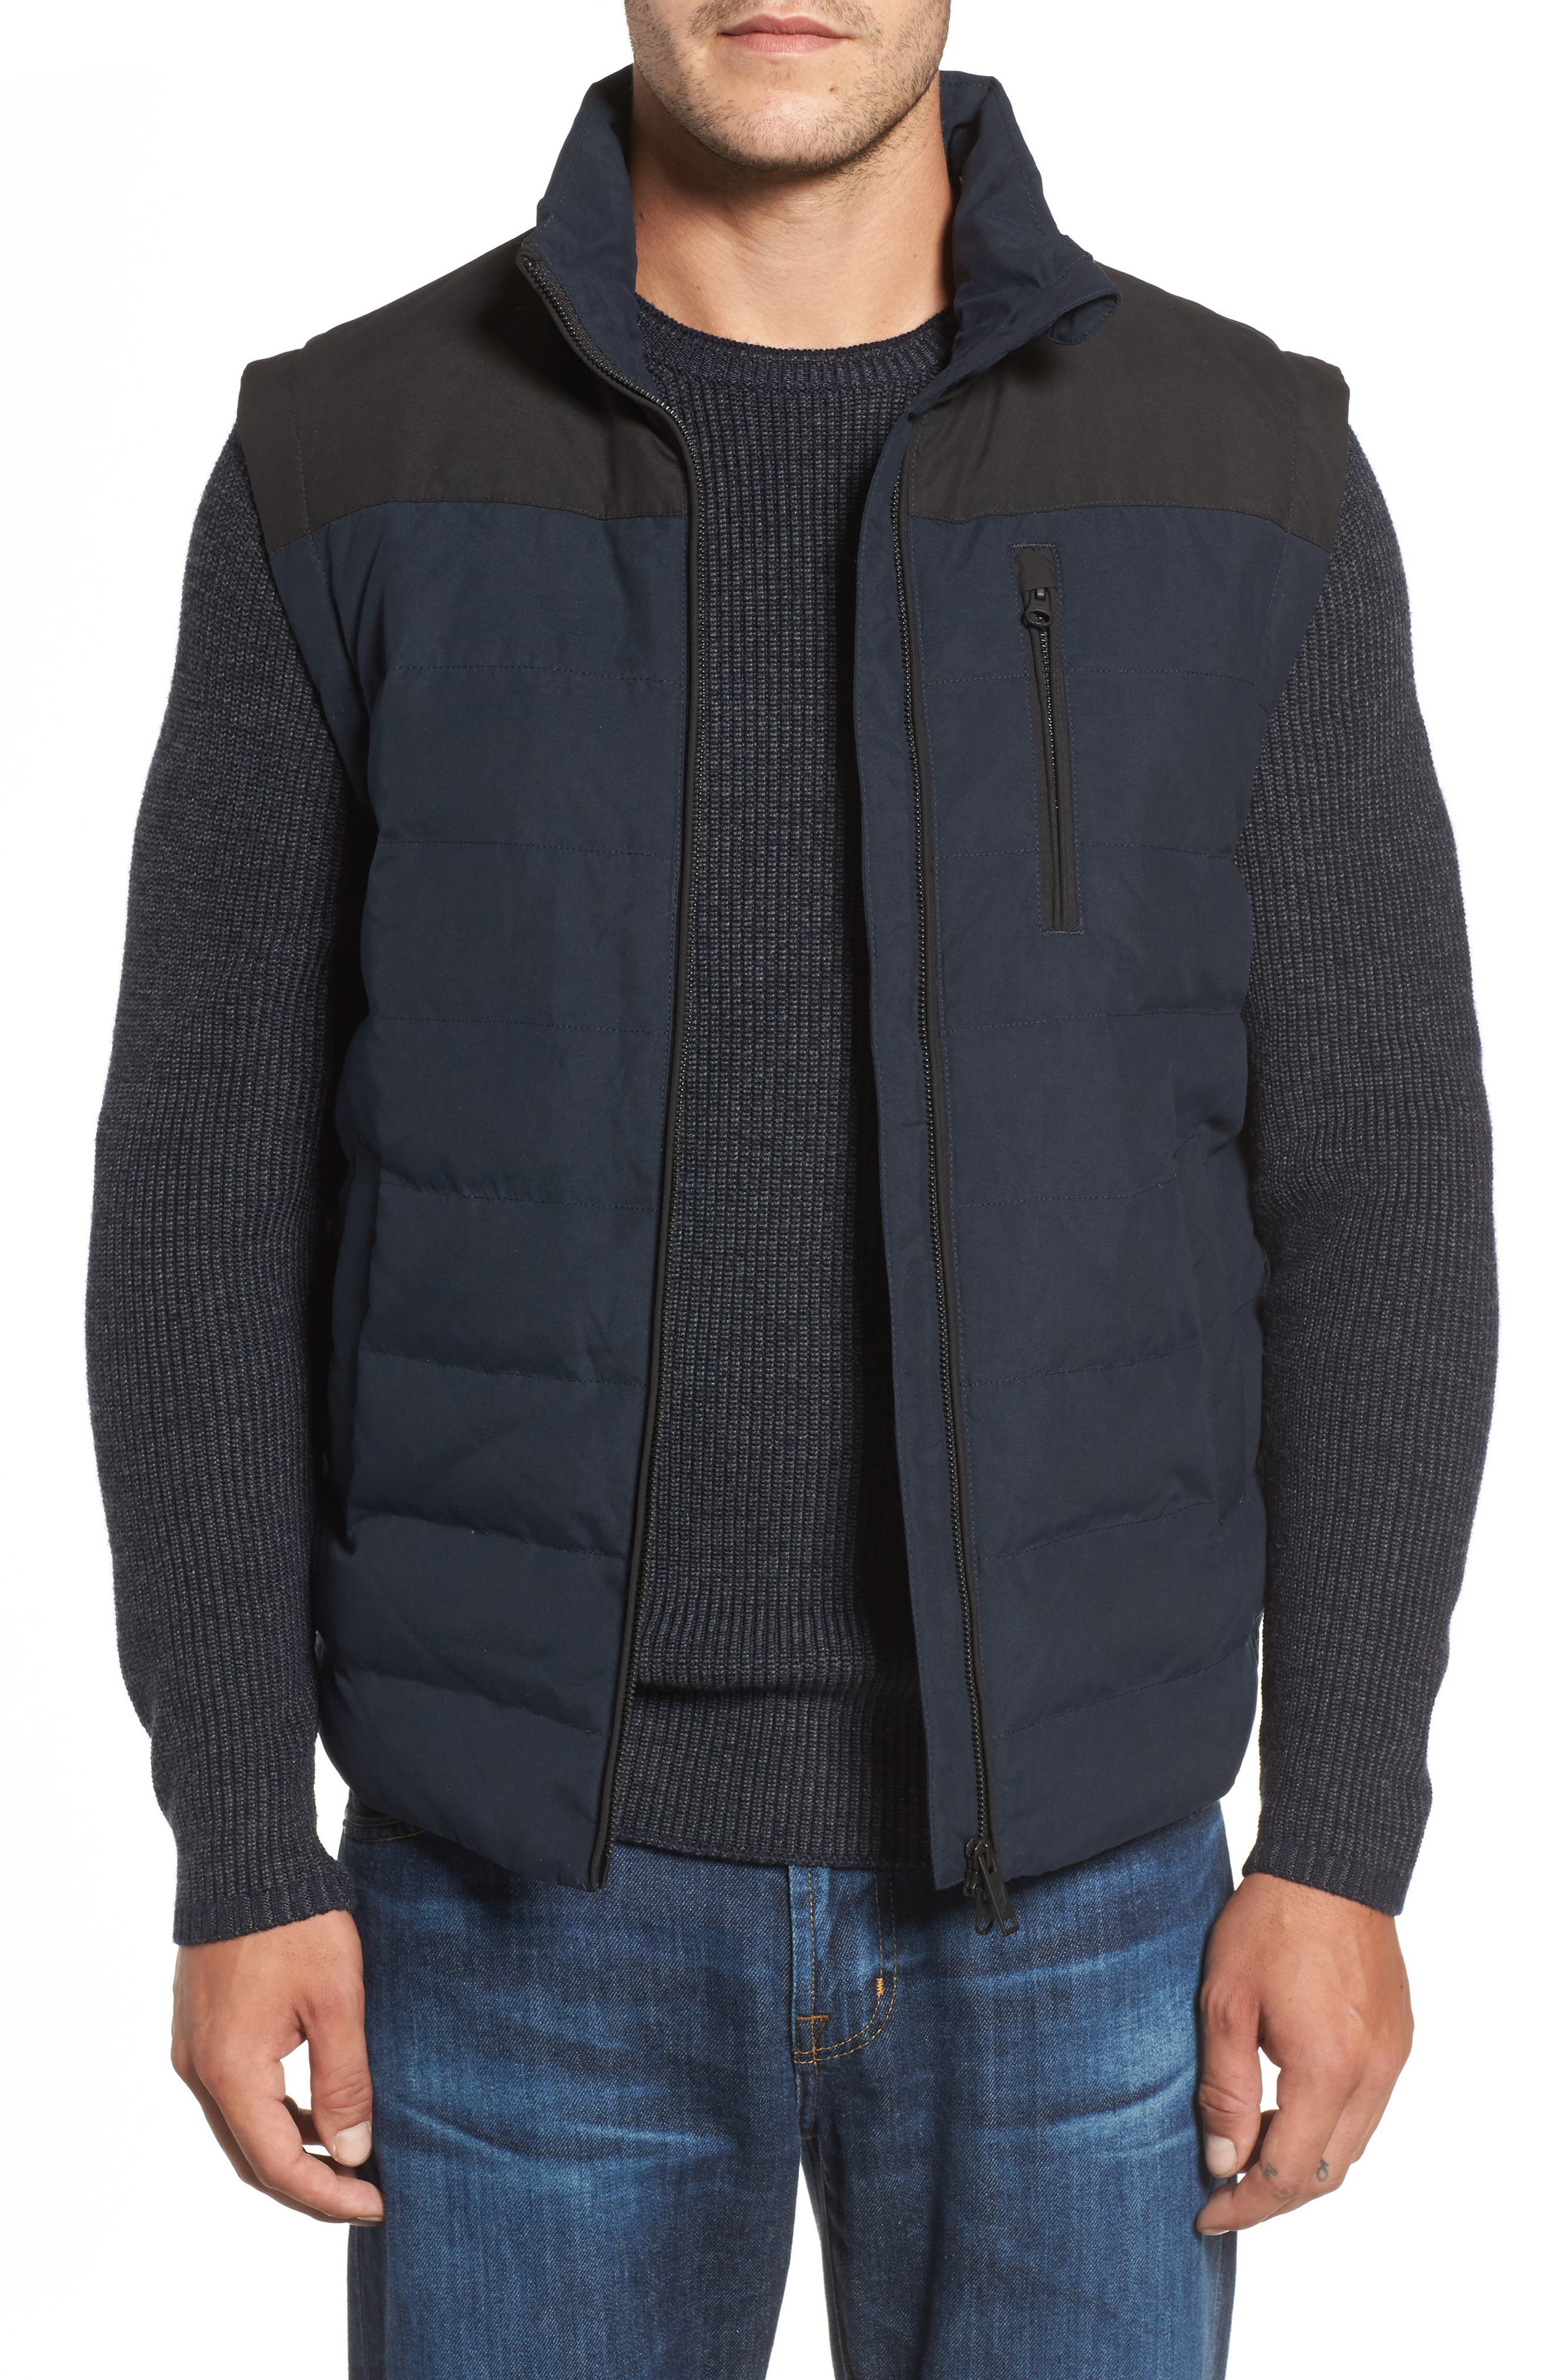 Stillwater Quilted Vest,                             Main thumbnail 1, color,                             403